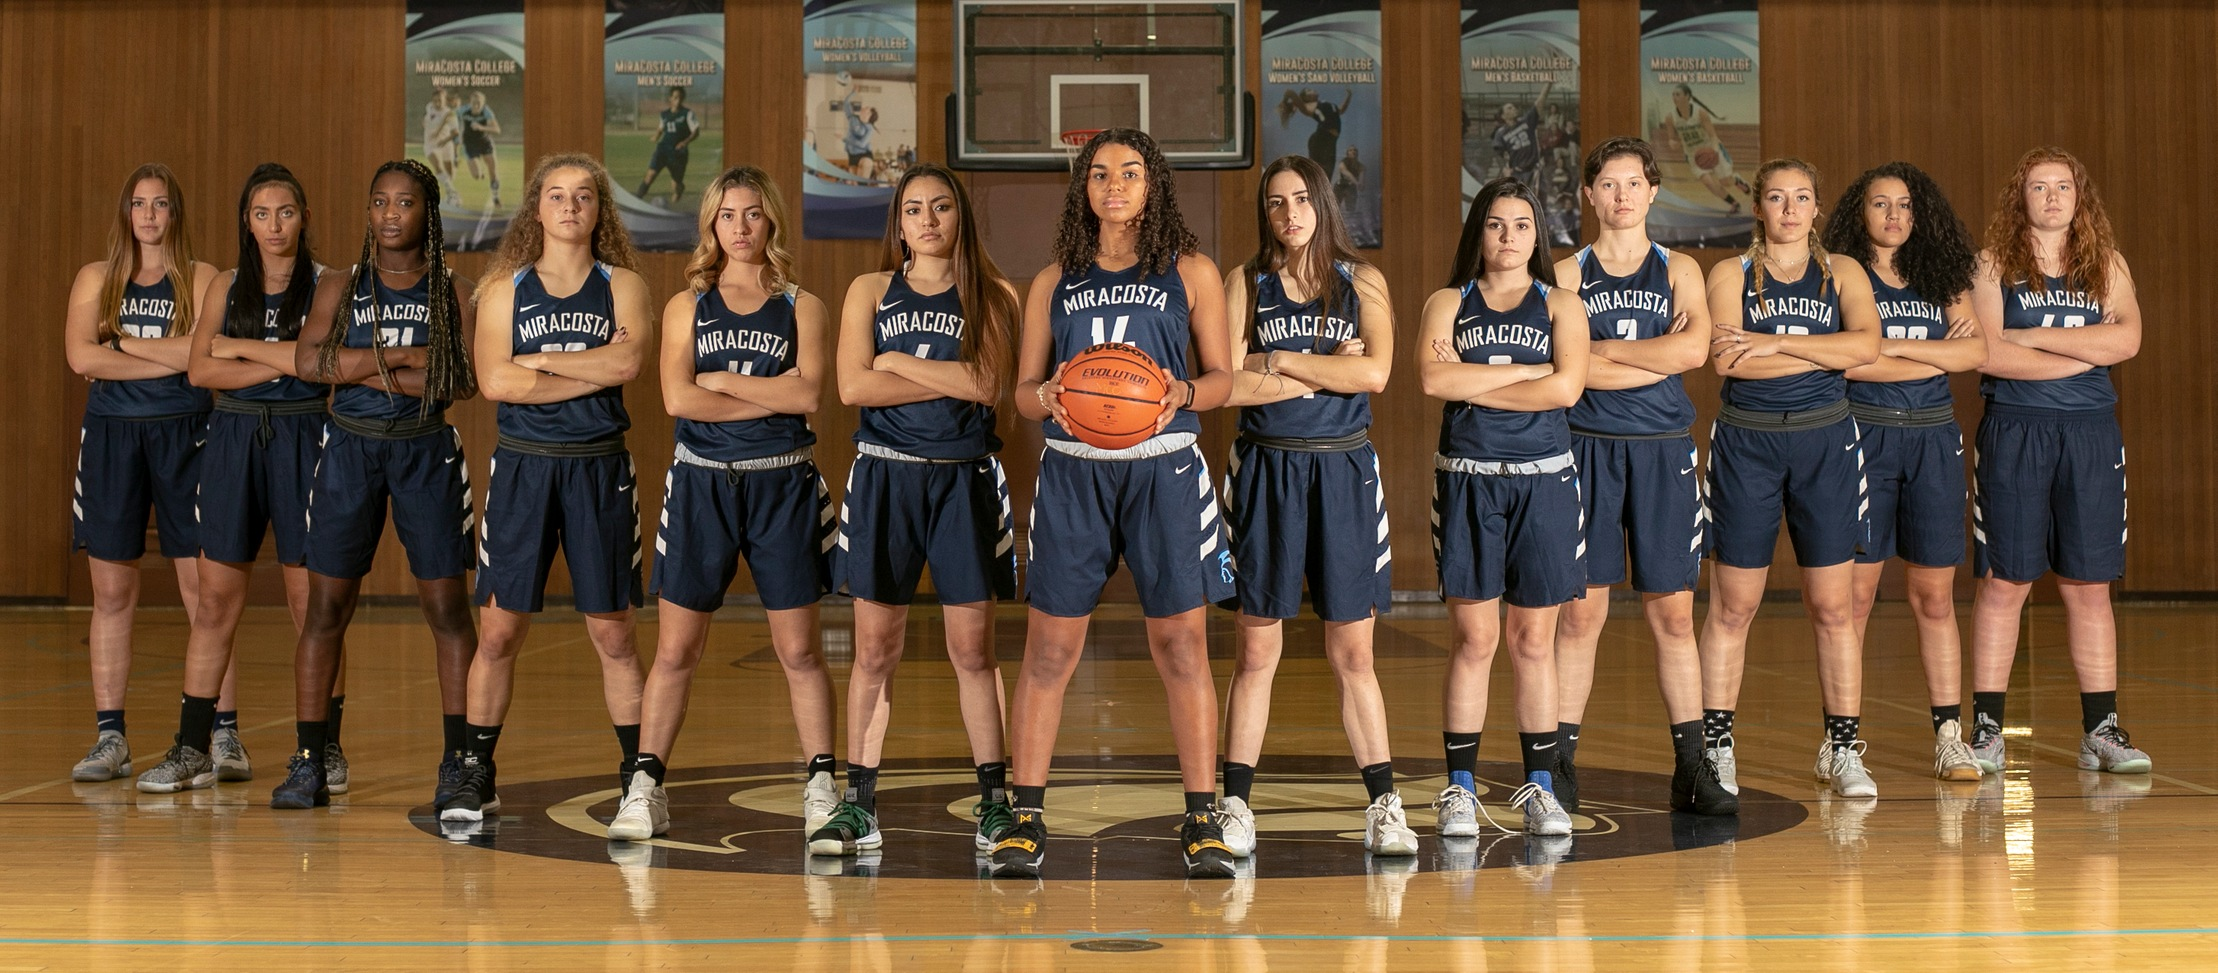 Women's Basketball team picture.